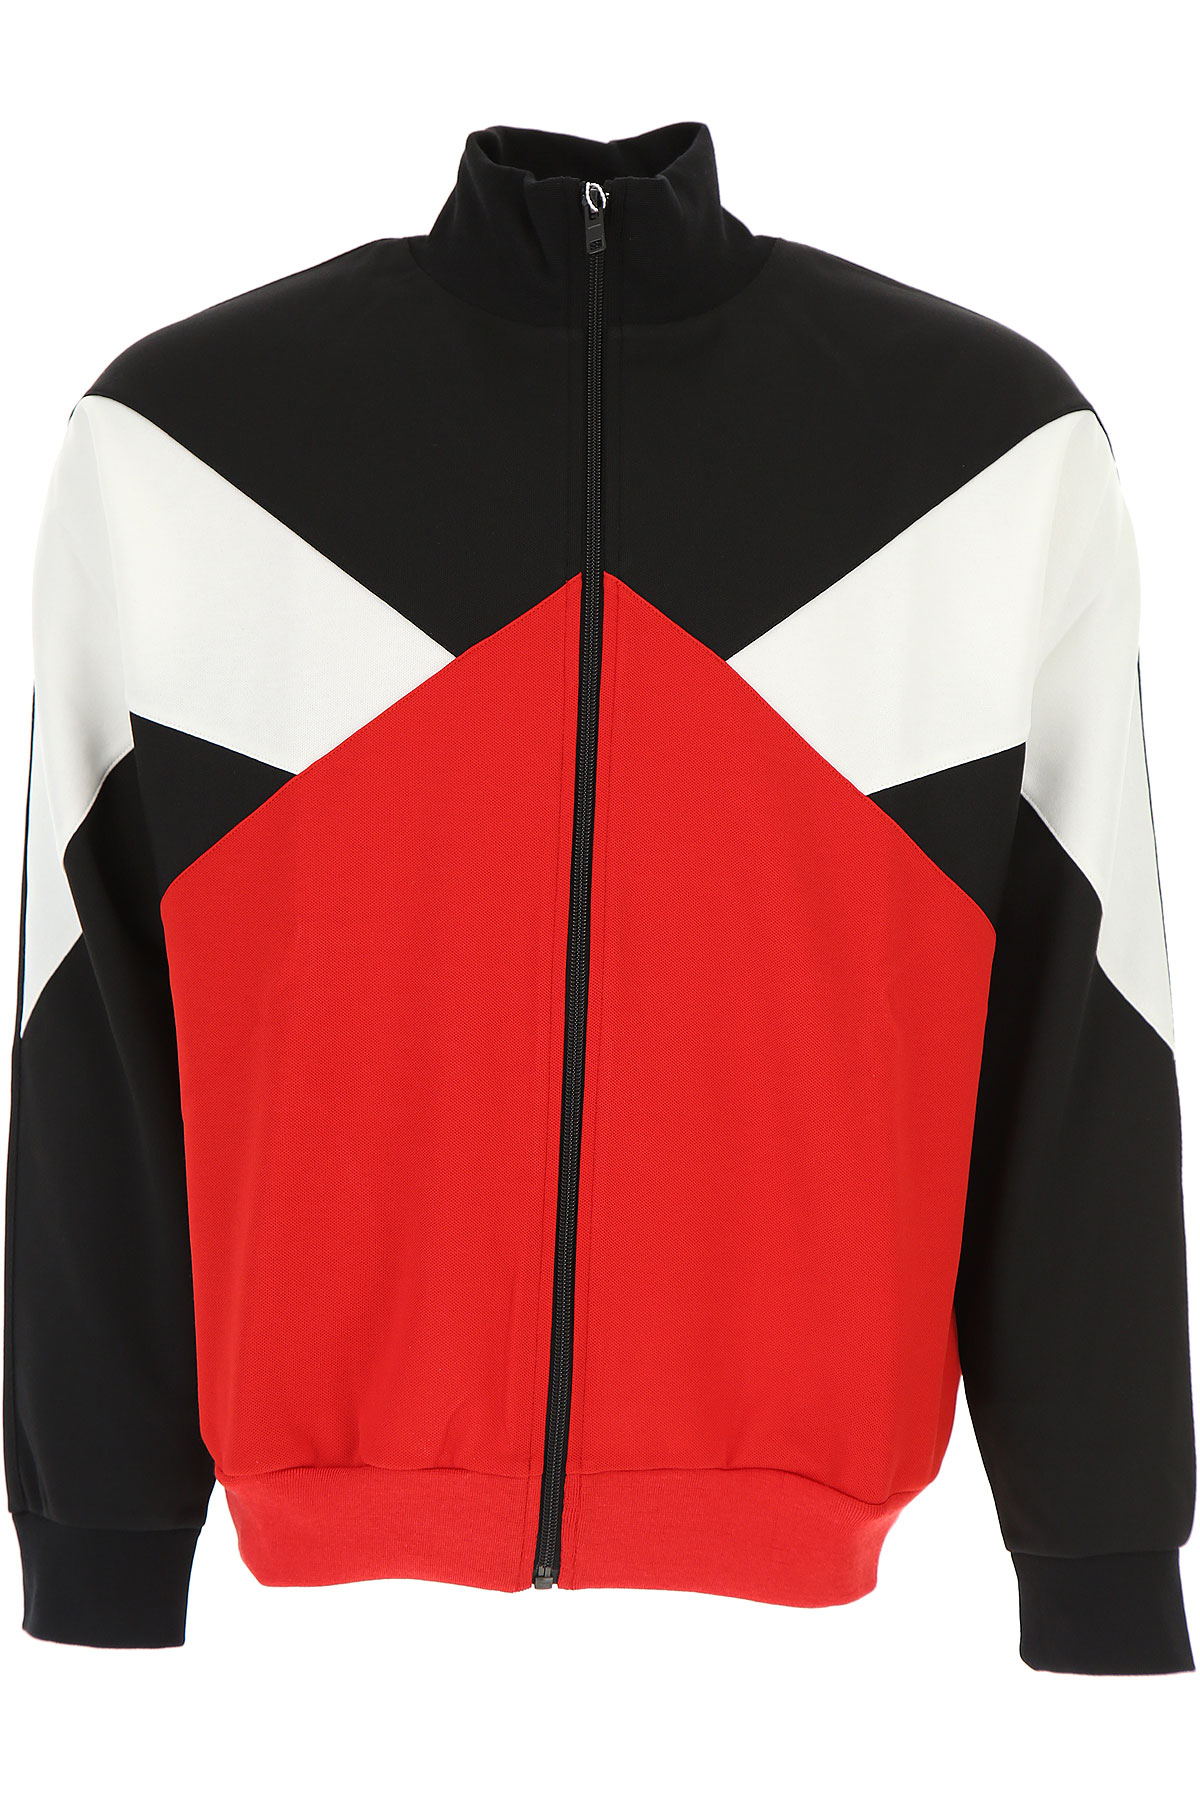 Maison Martin Margiela Sweatshirt for Men On Sale, Red, polyester, 2017, L M S XL USA-459245